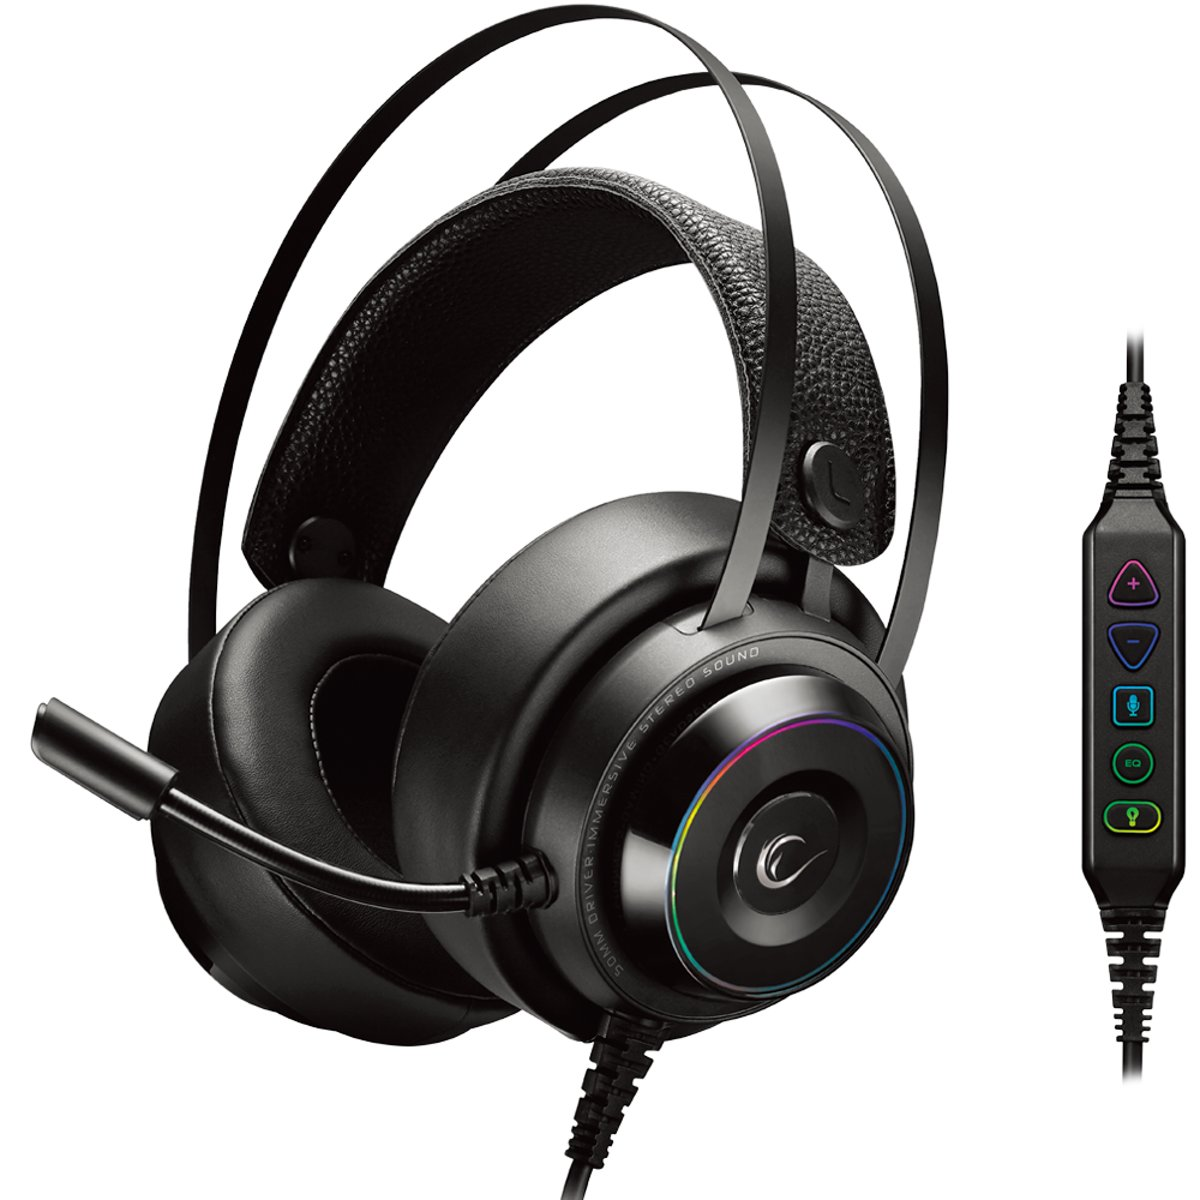 Ultimate 7.1 RGB gaming headset RG-X19 - Surround Sound - PC